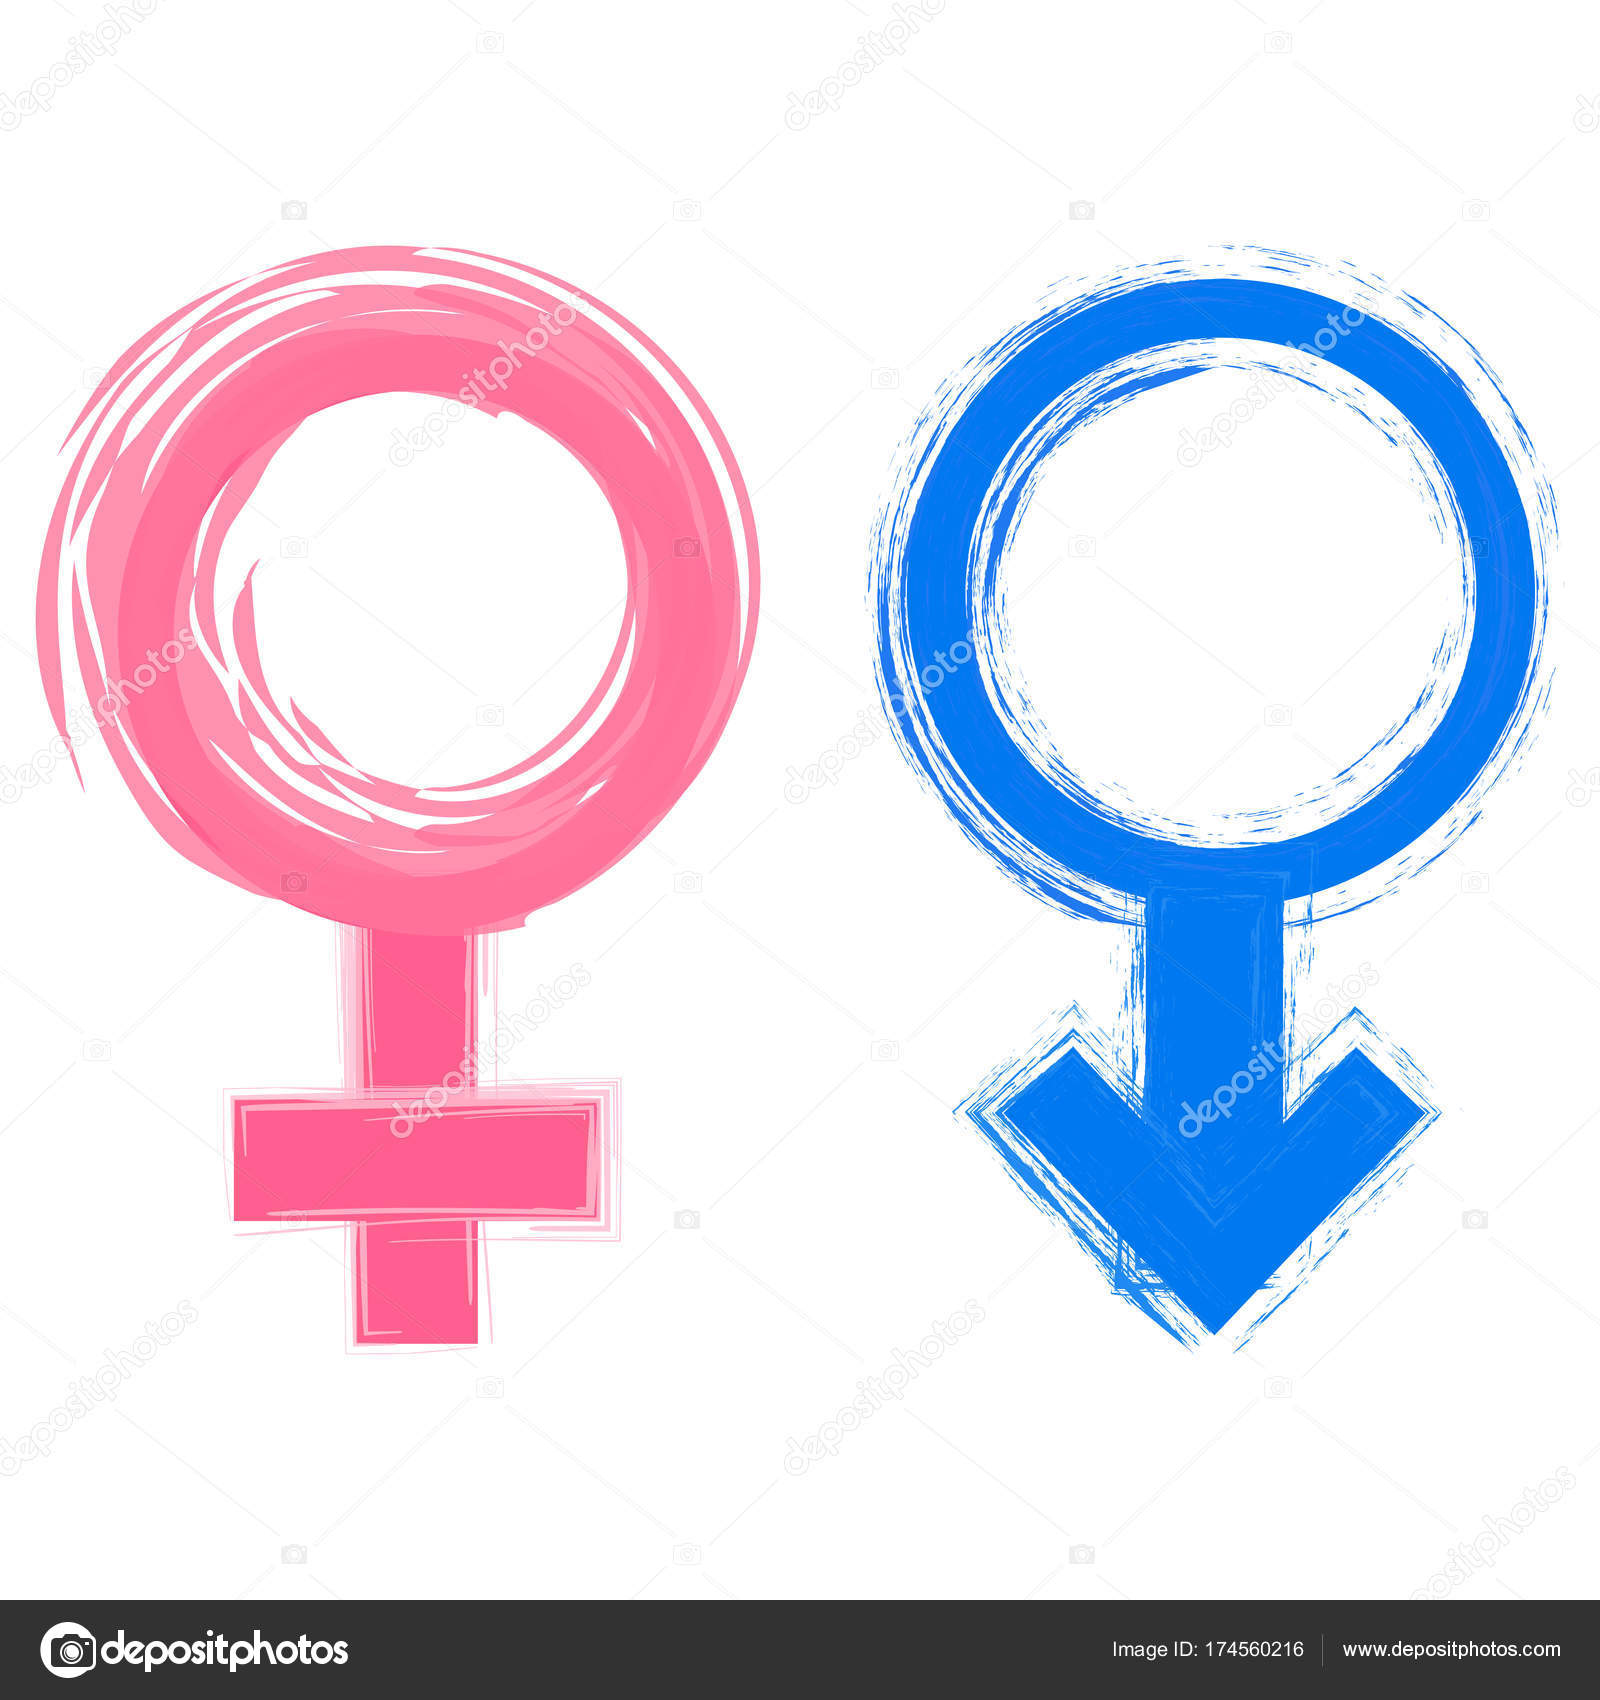 Vector Illustration Of Male And Female Gender Symbols Stock Vector